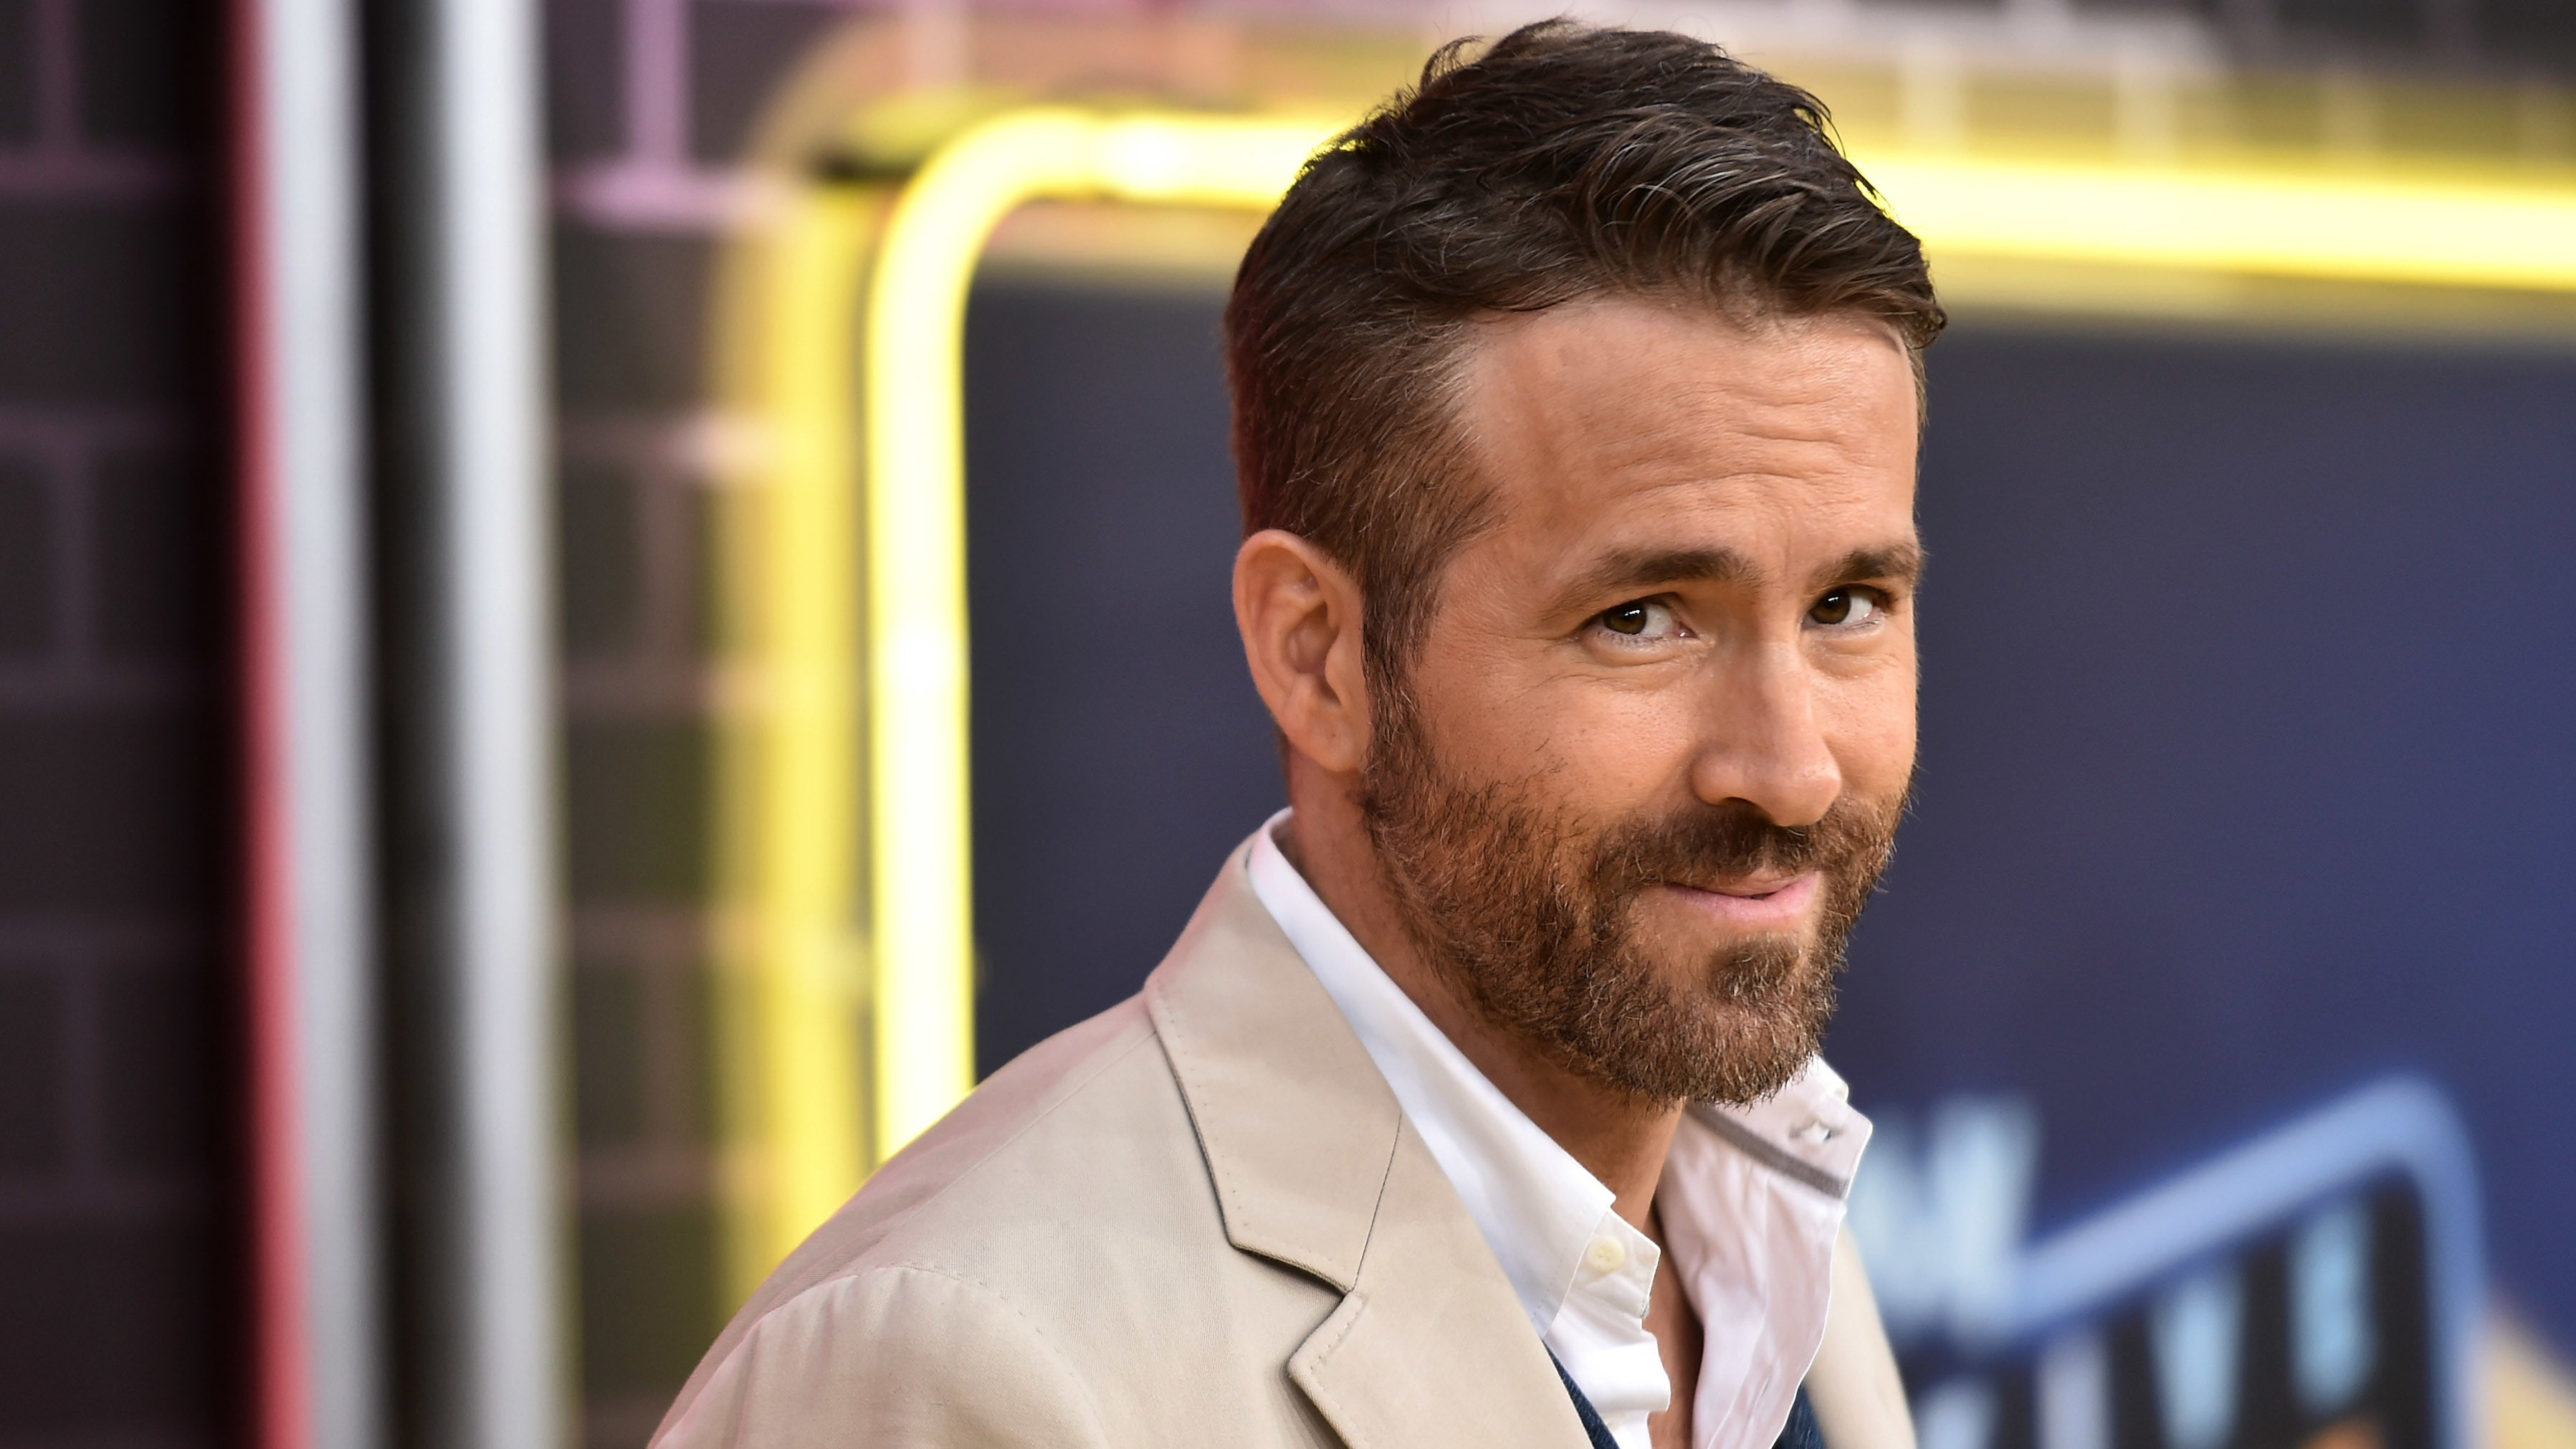 Ryan Reynolds Is Collaborating With Shawn Levy Again To Make A Time Travel Movie